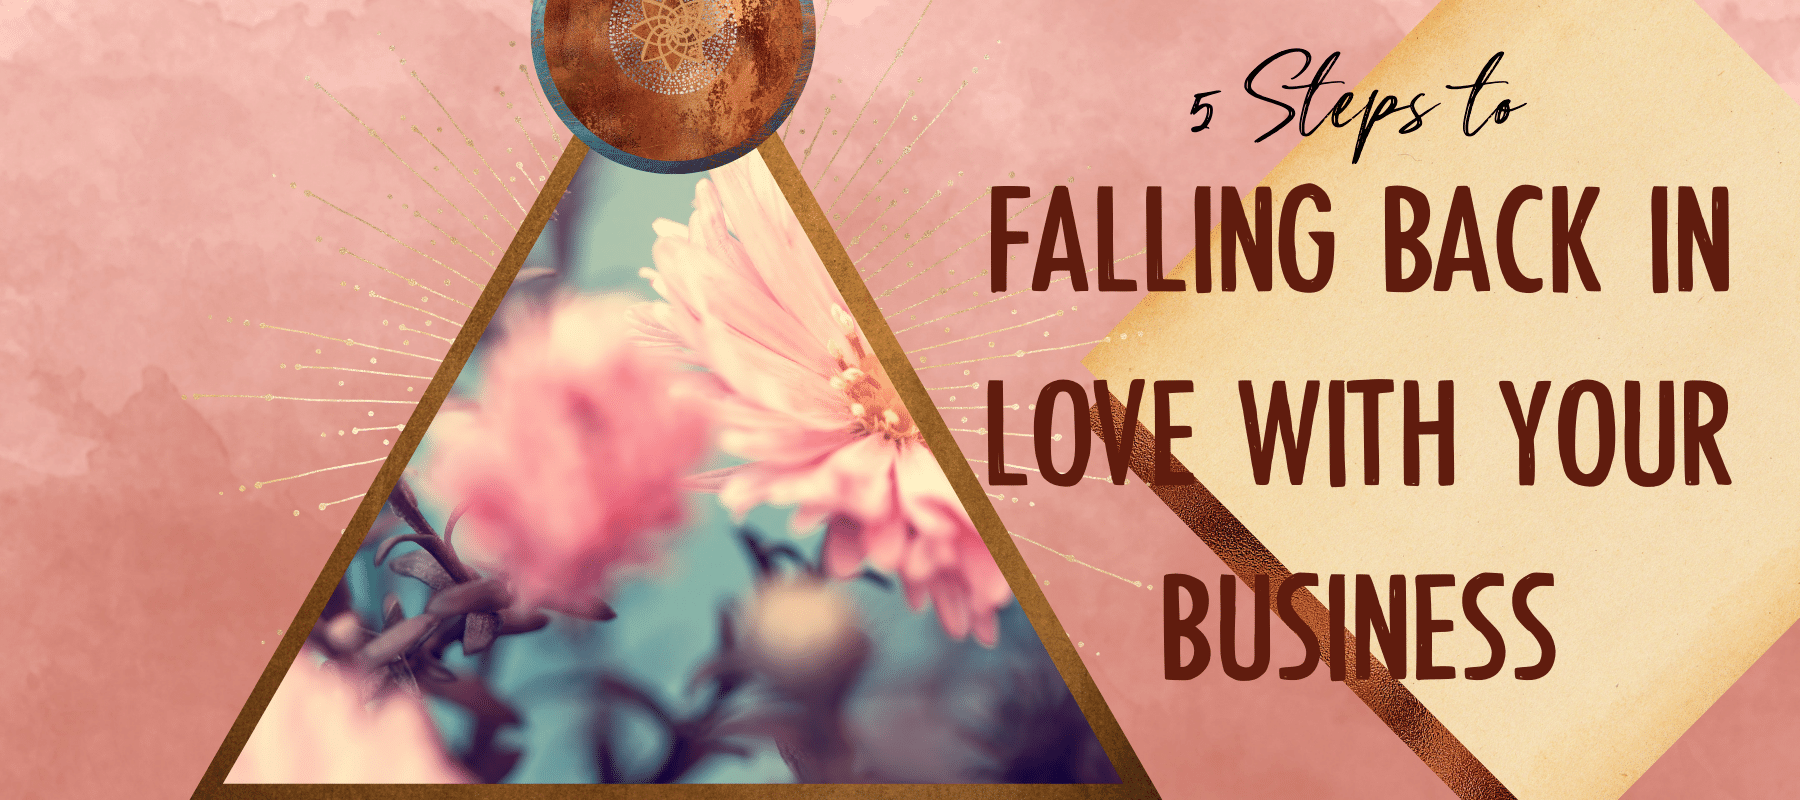 5 Steps to Falling Back in Love with Your Business